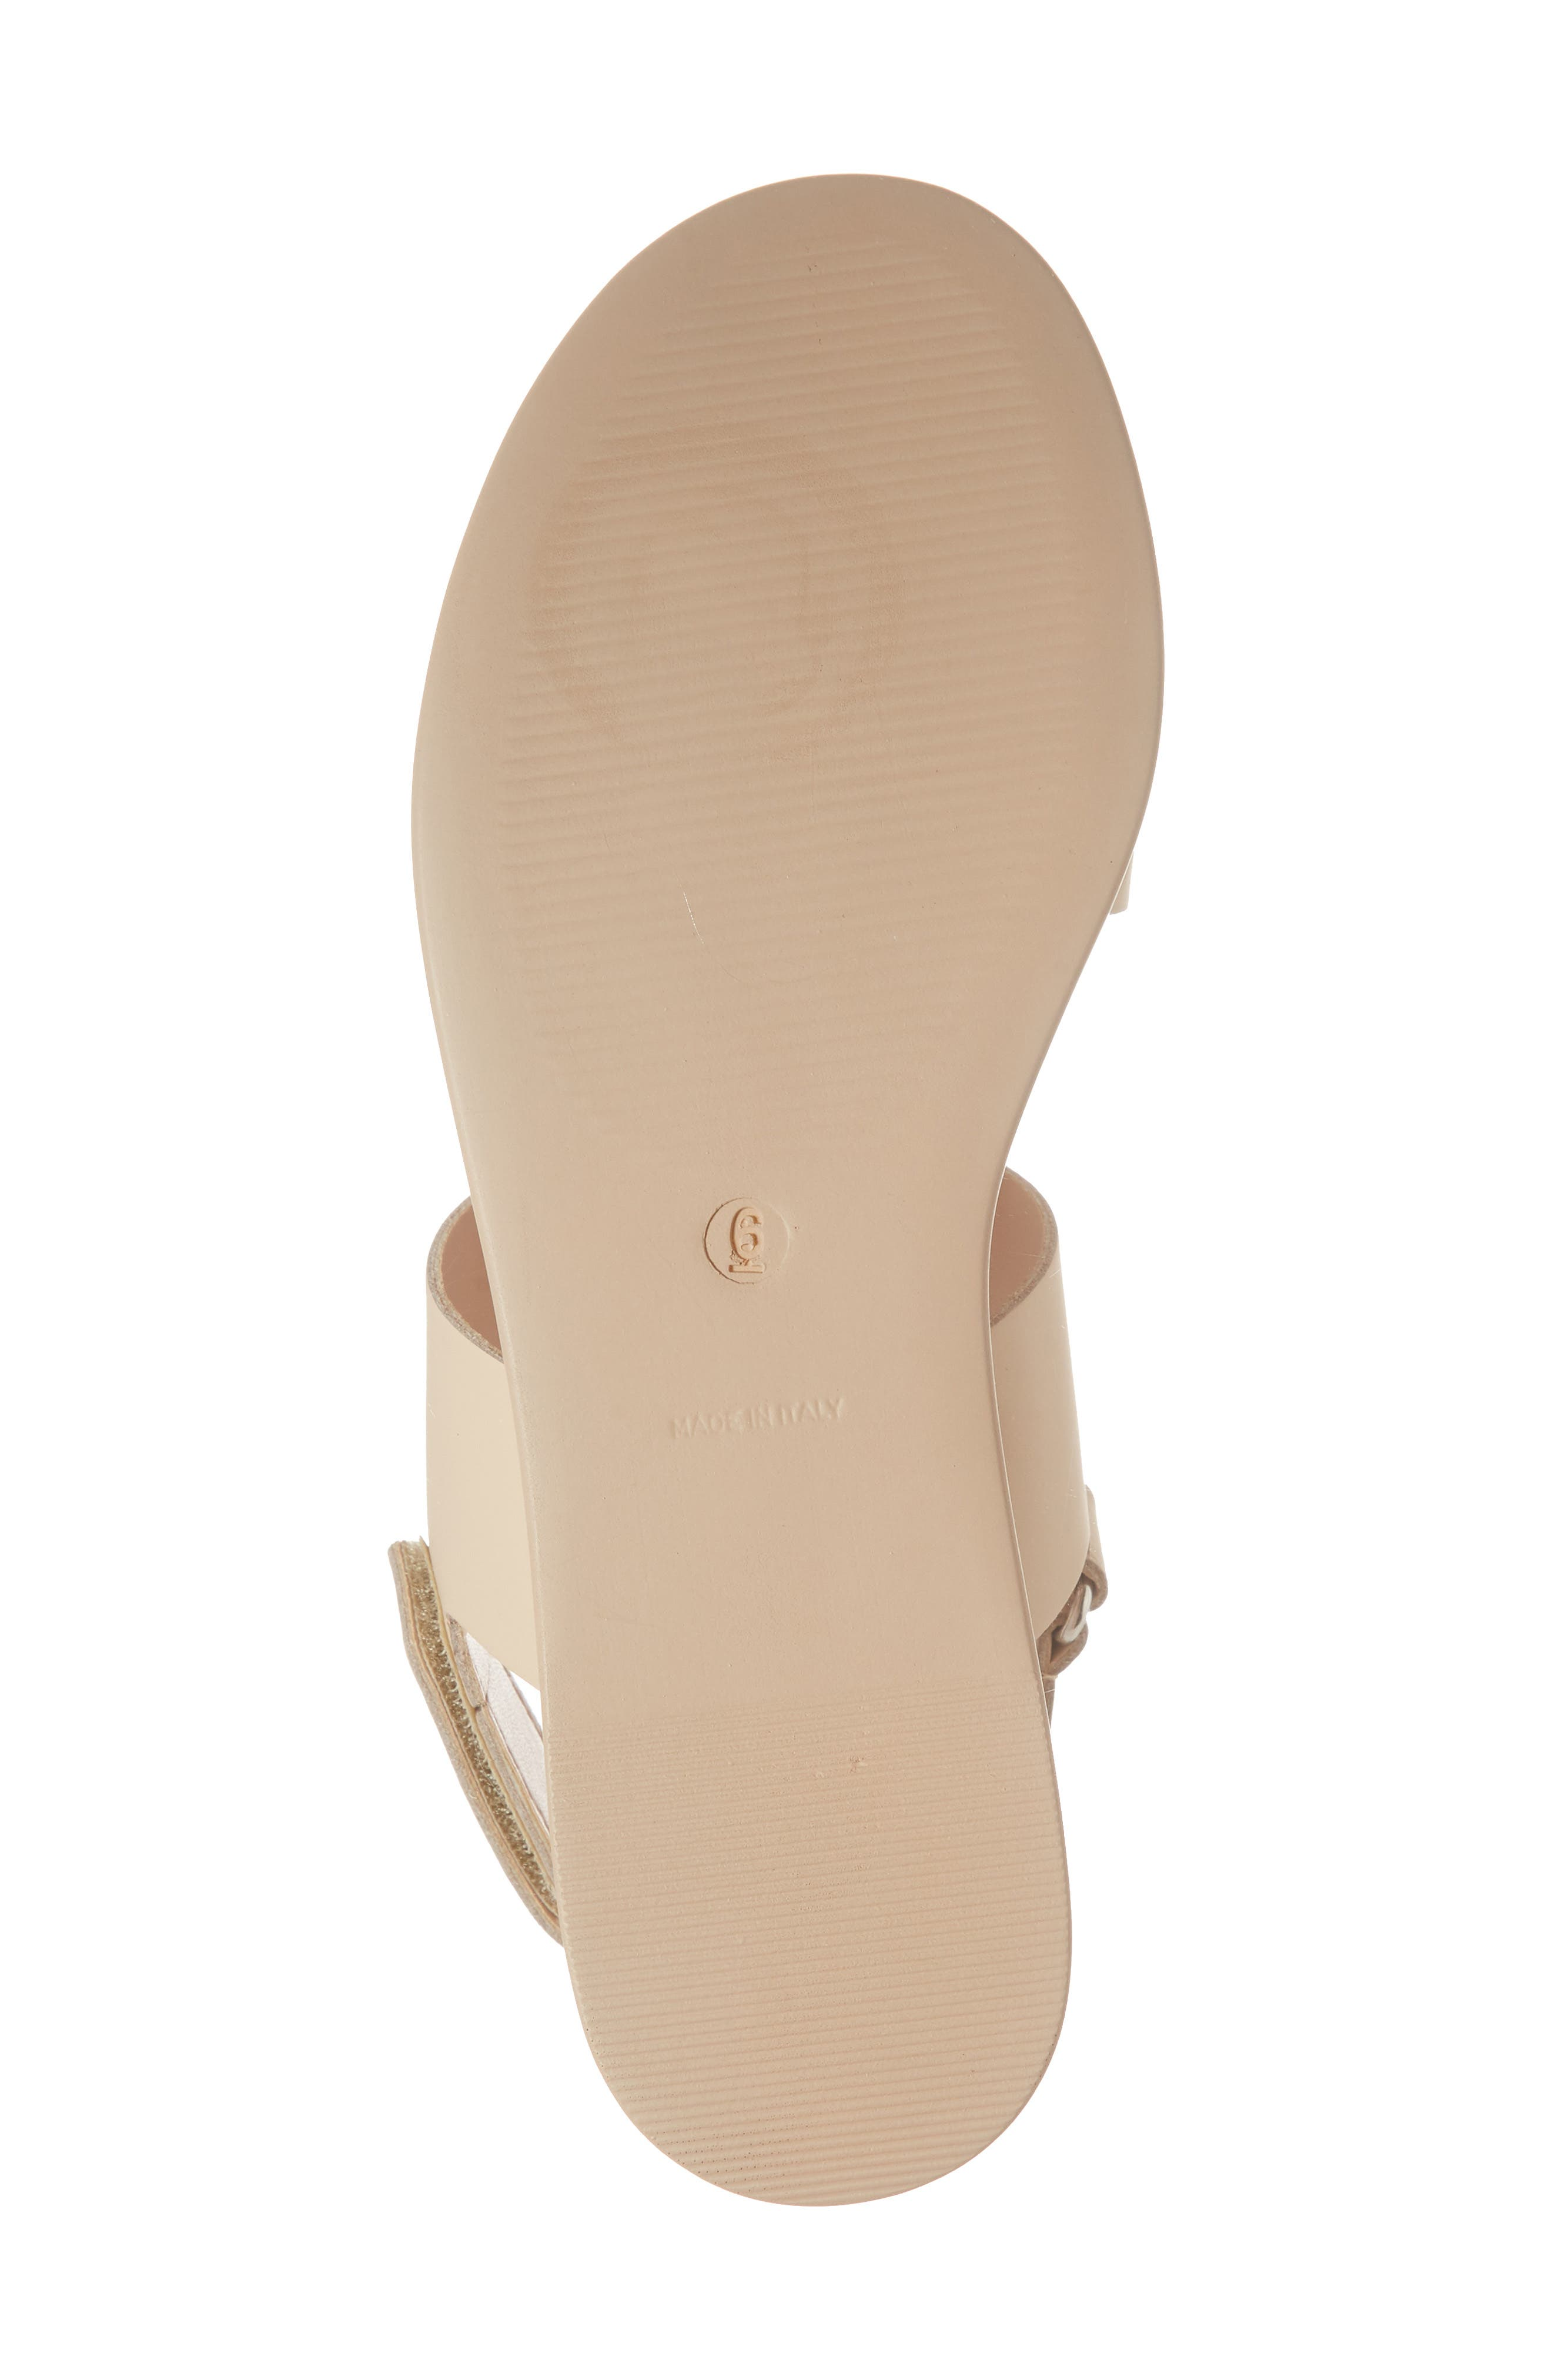 Rachel Platform Wedge Sandal,                             Alternate thumbnail 6, color,                             250